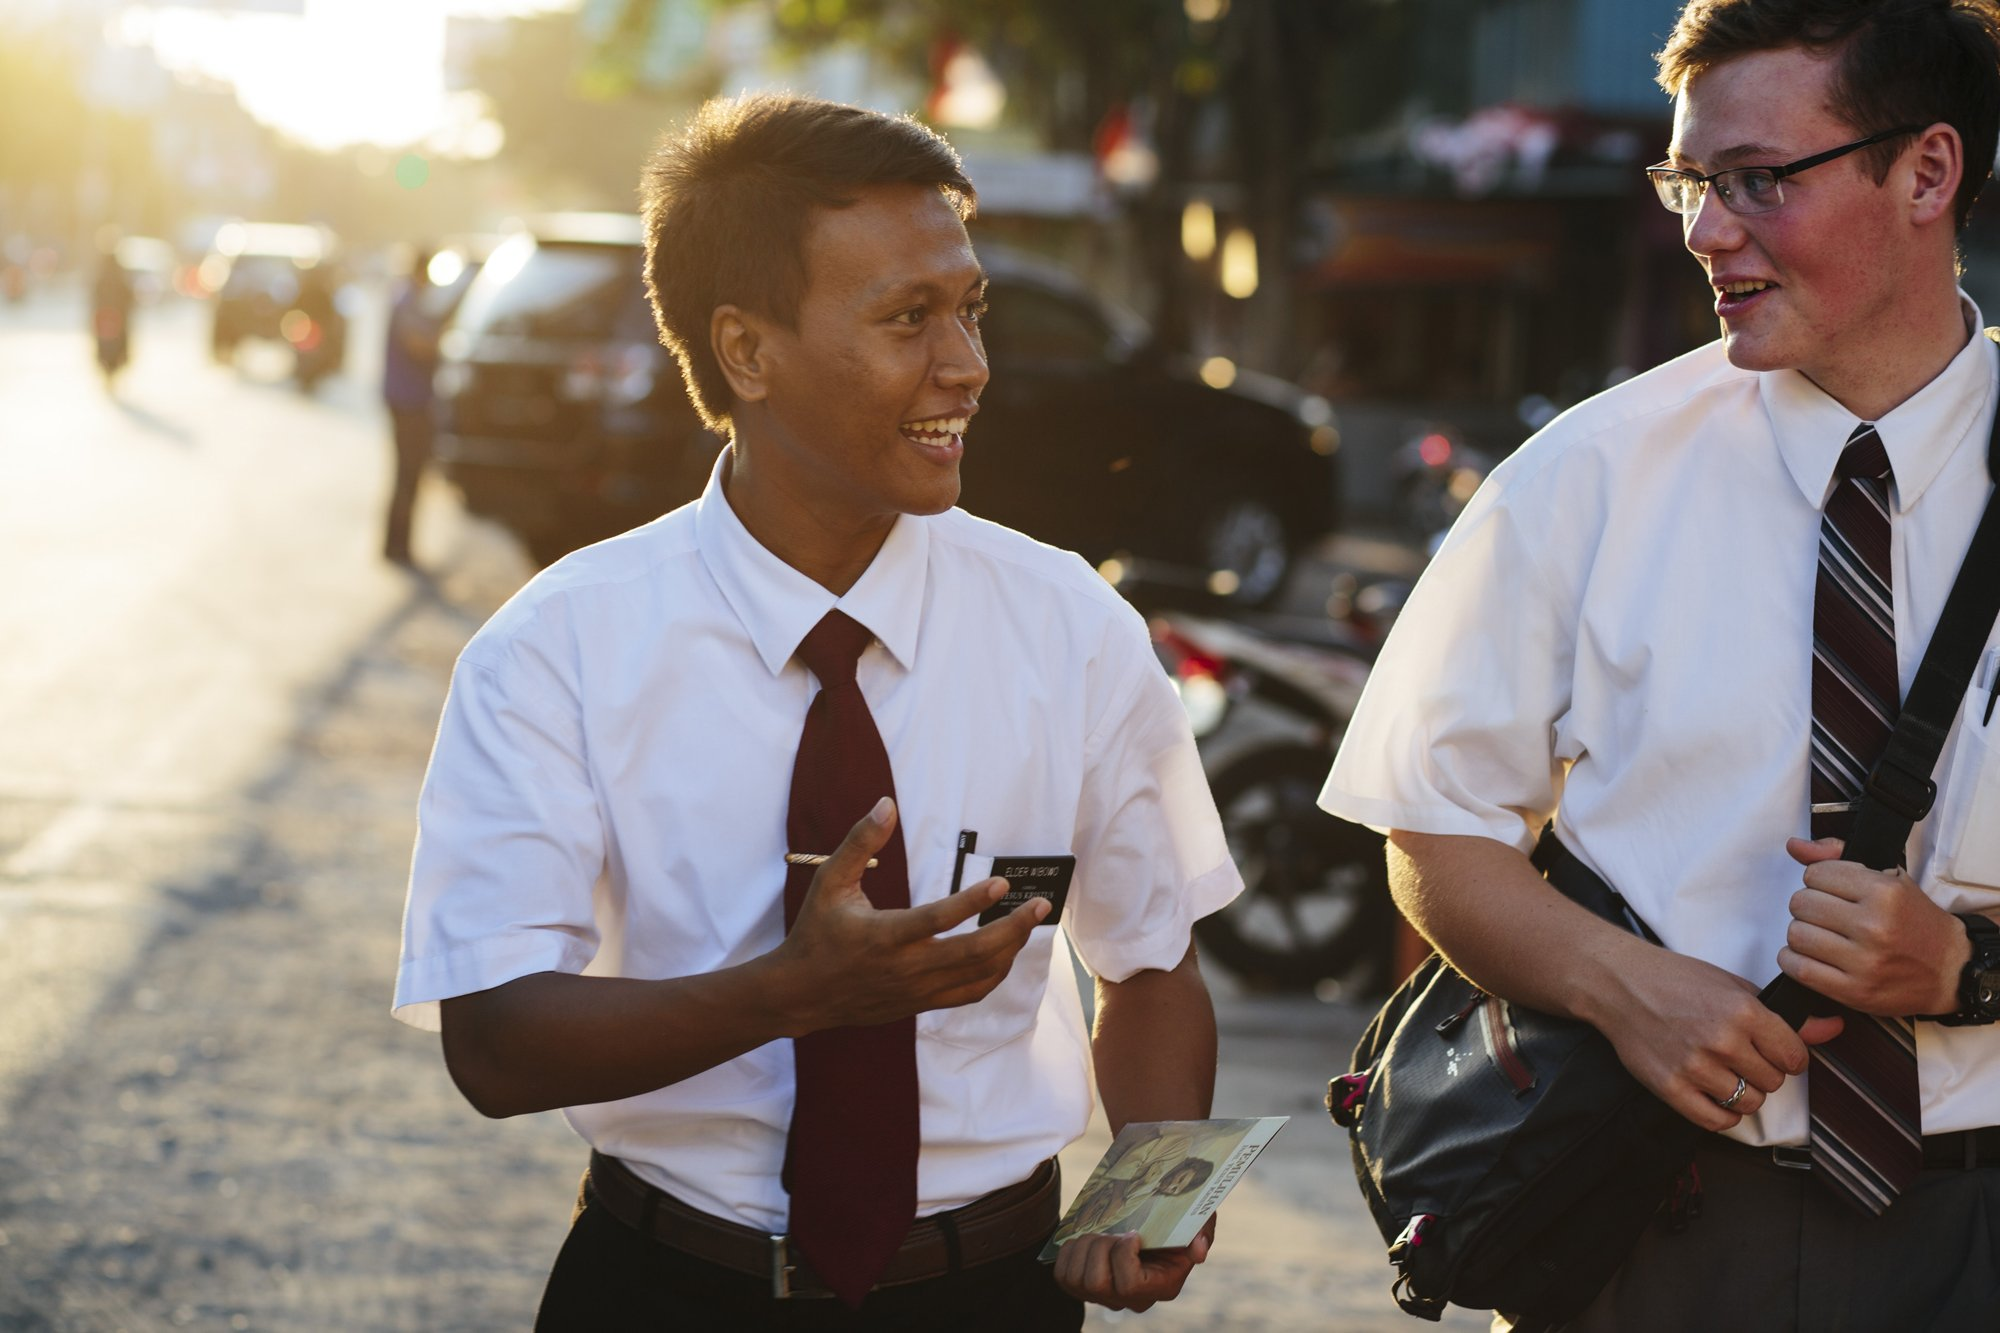 Mormon missionaries walks the streets of Indonesia.